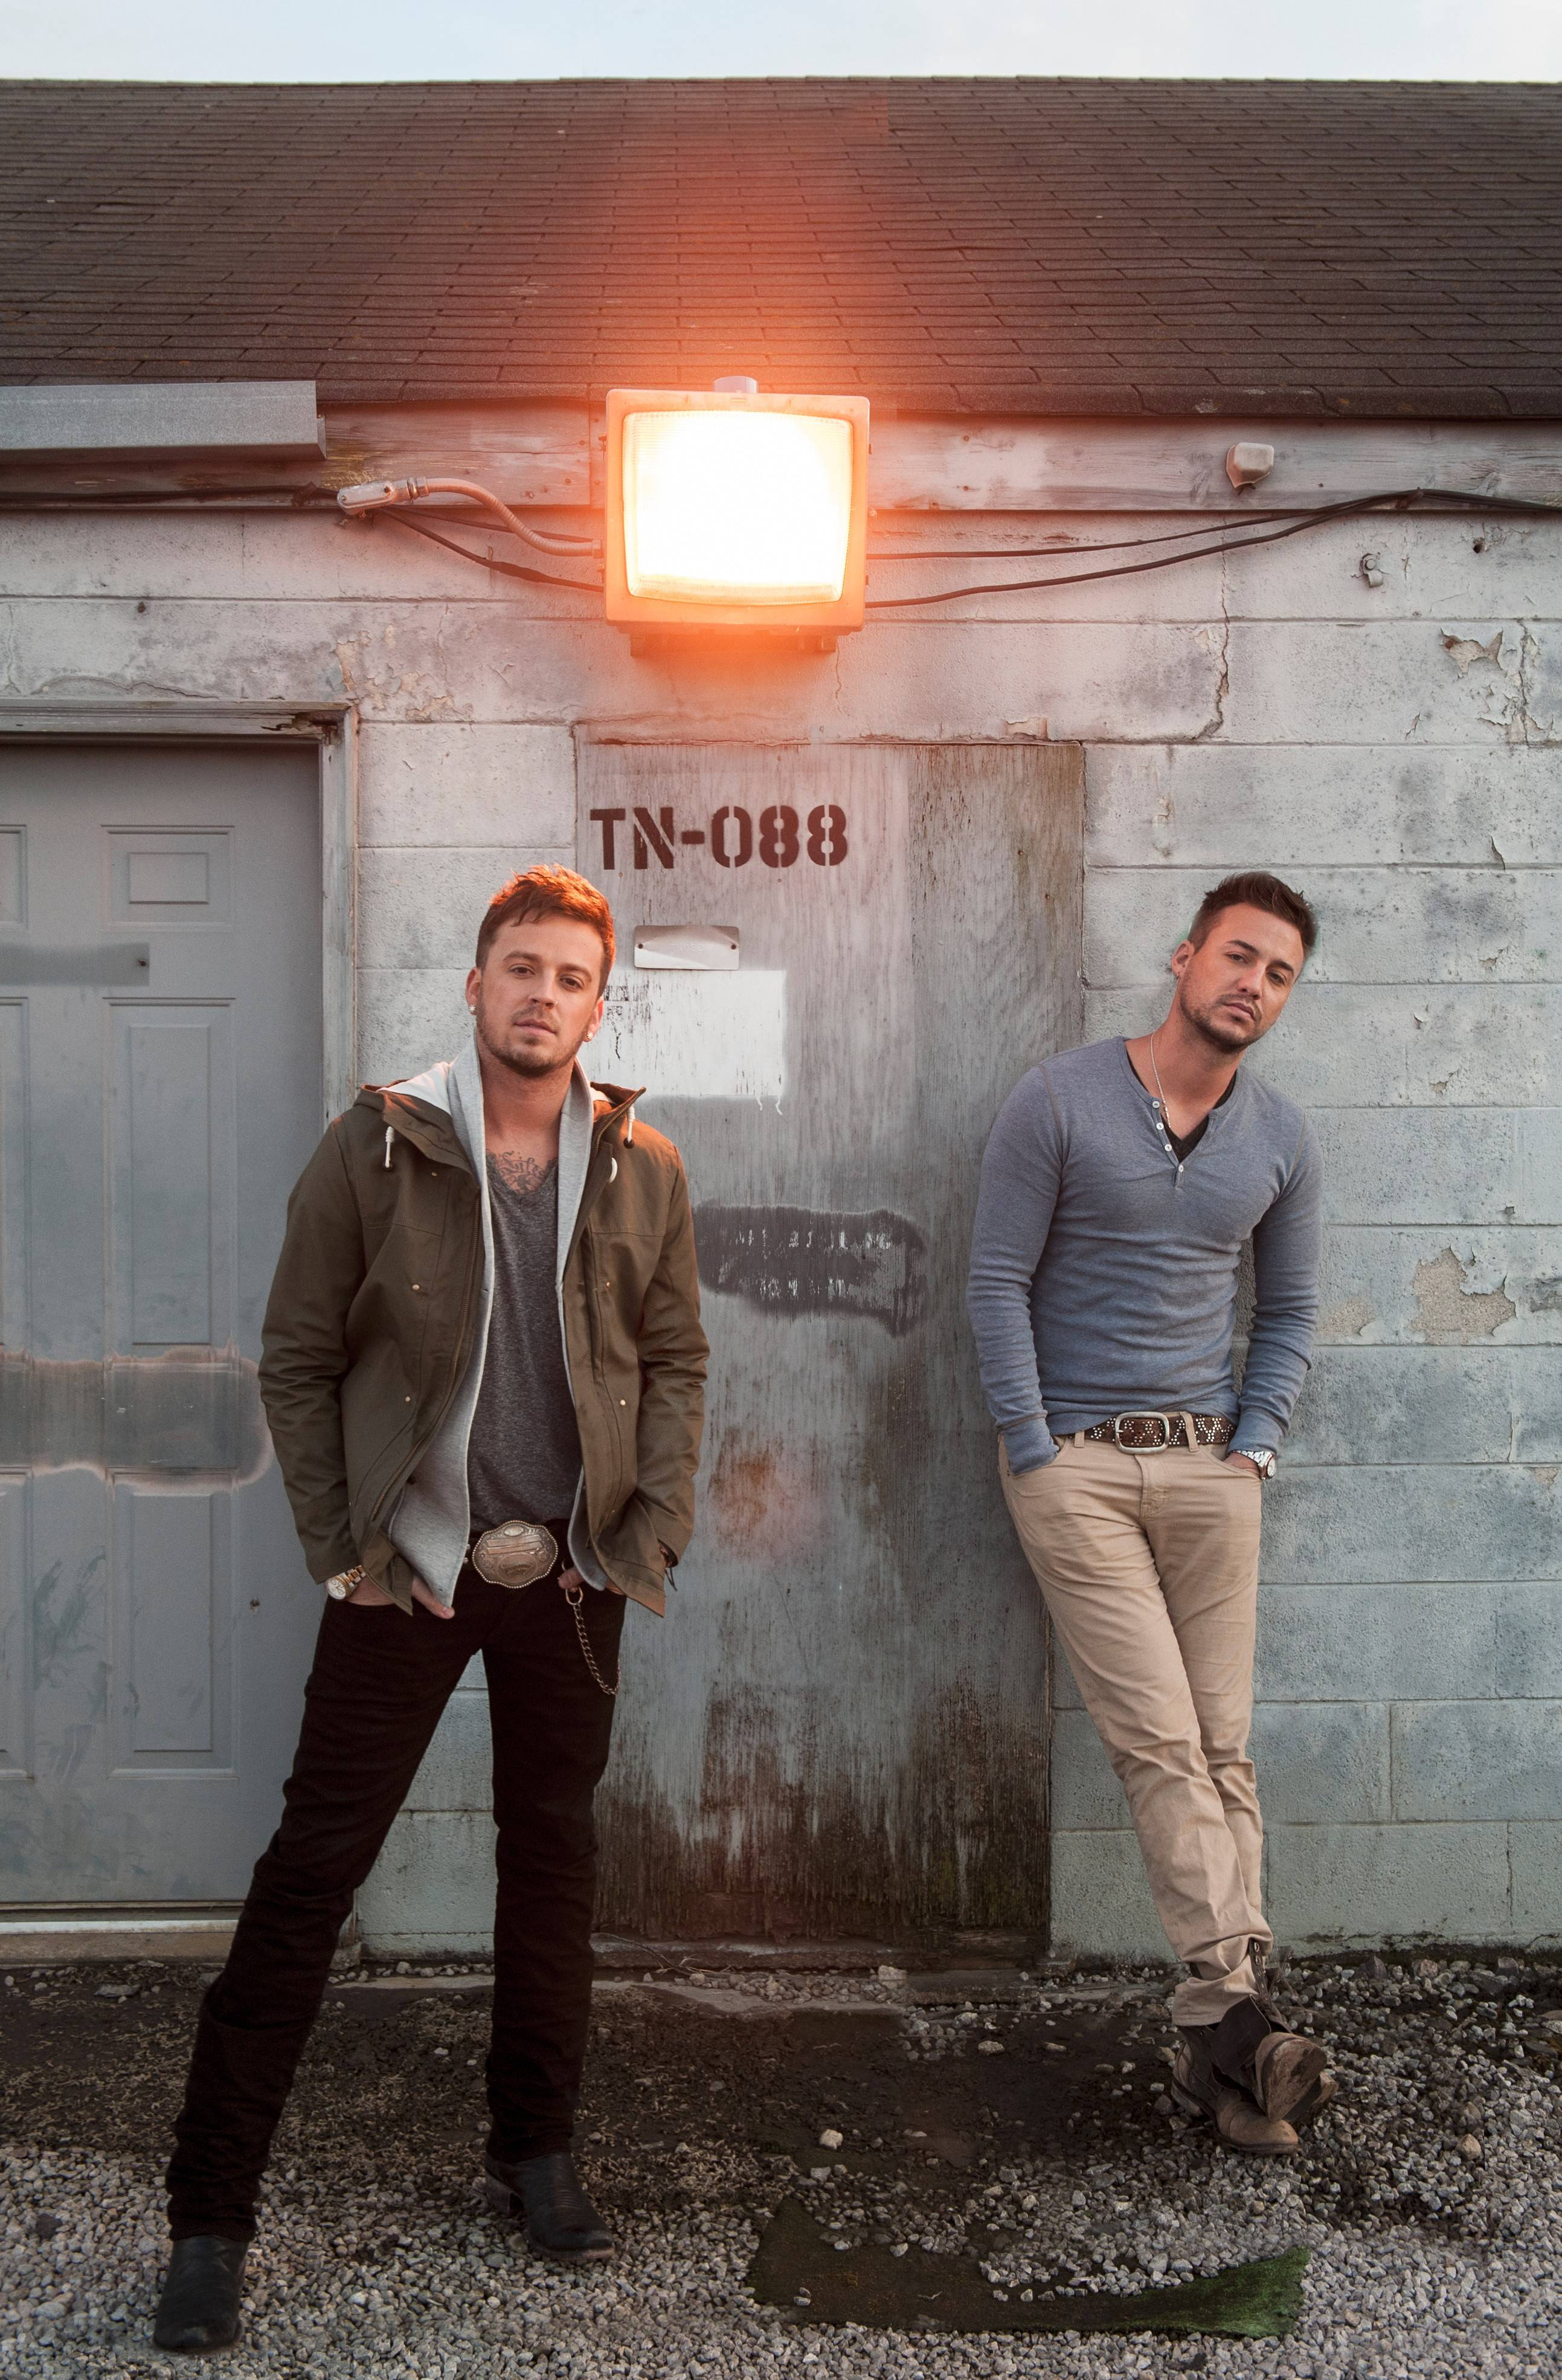 Love and Theft will headline the July 4 musical performances from three country artists at the 27th annual Ribfest in Naperville. The band is making its second appearance in a row at the Naperville festival on the Fourth of July.